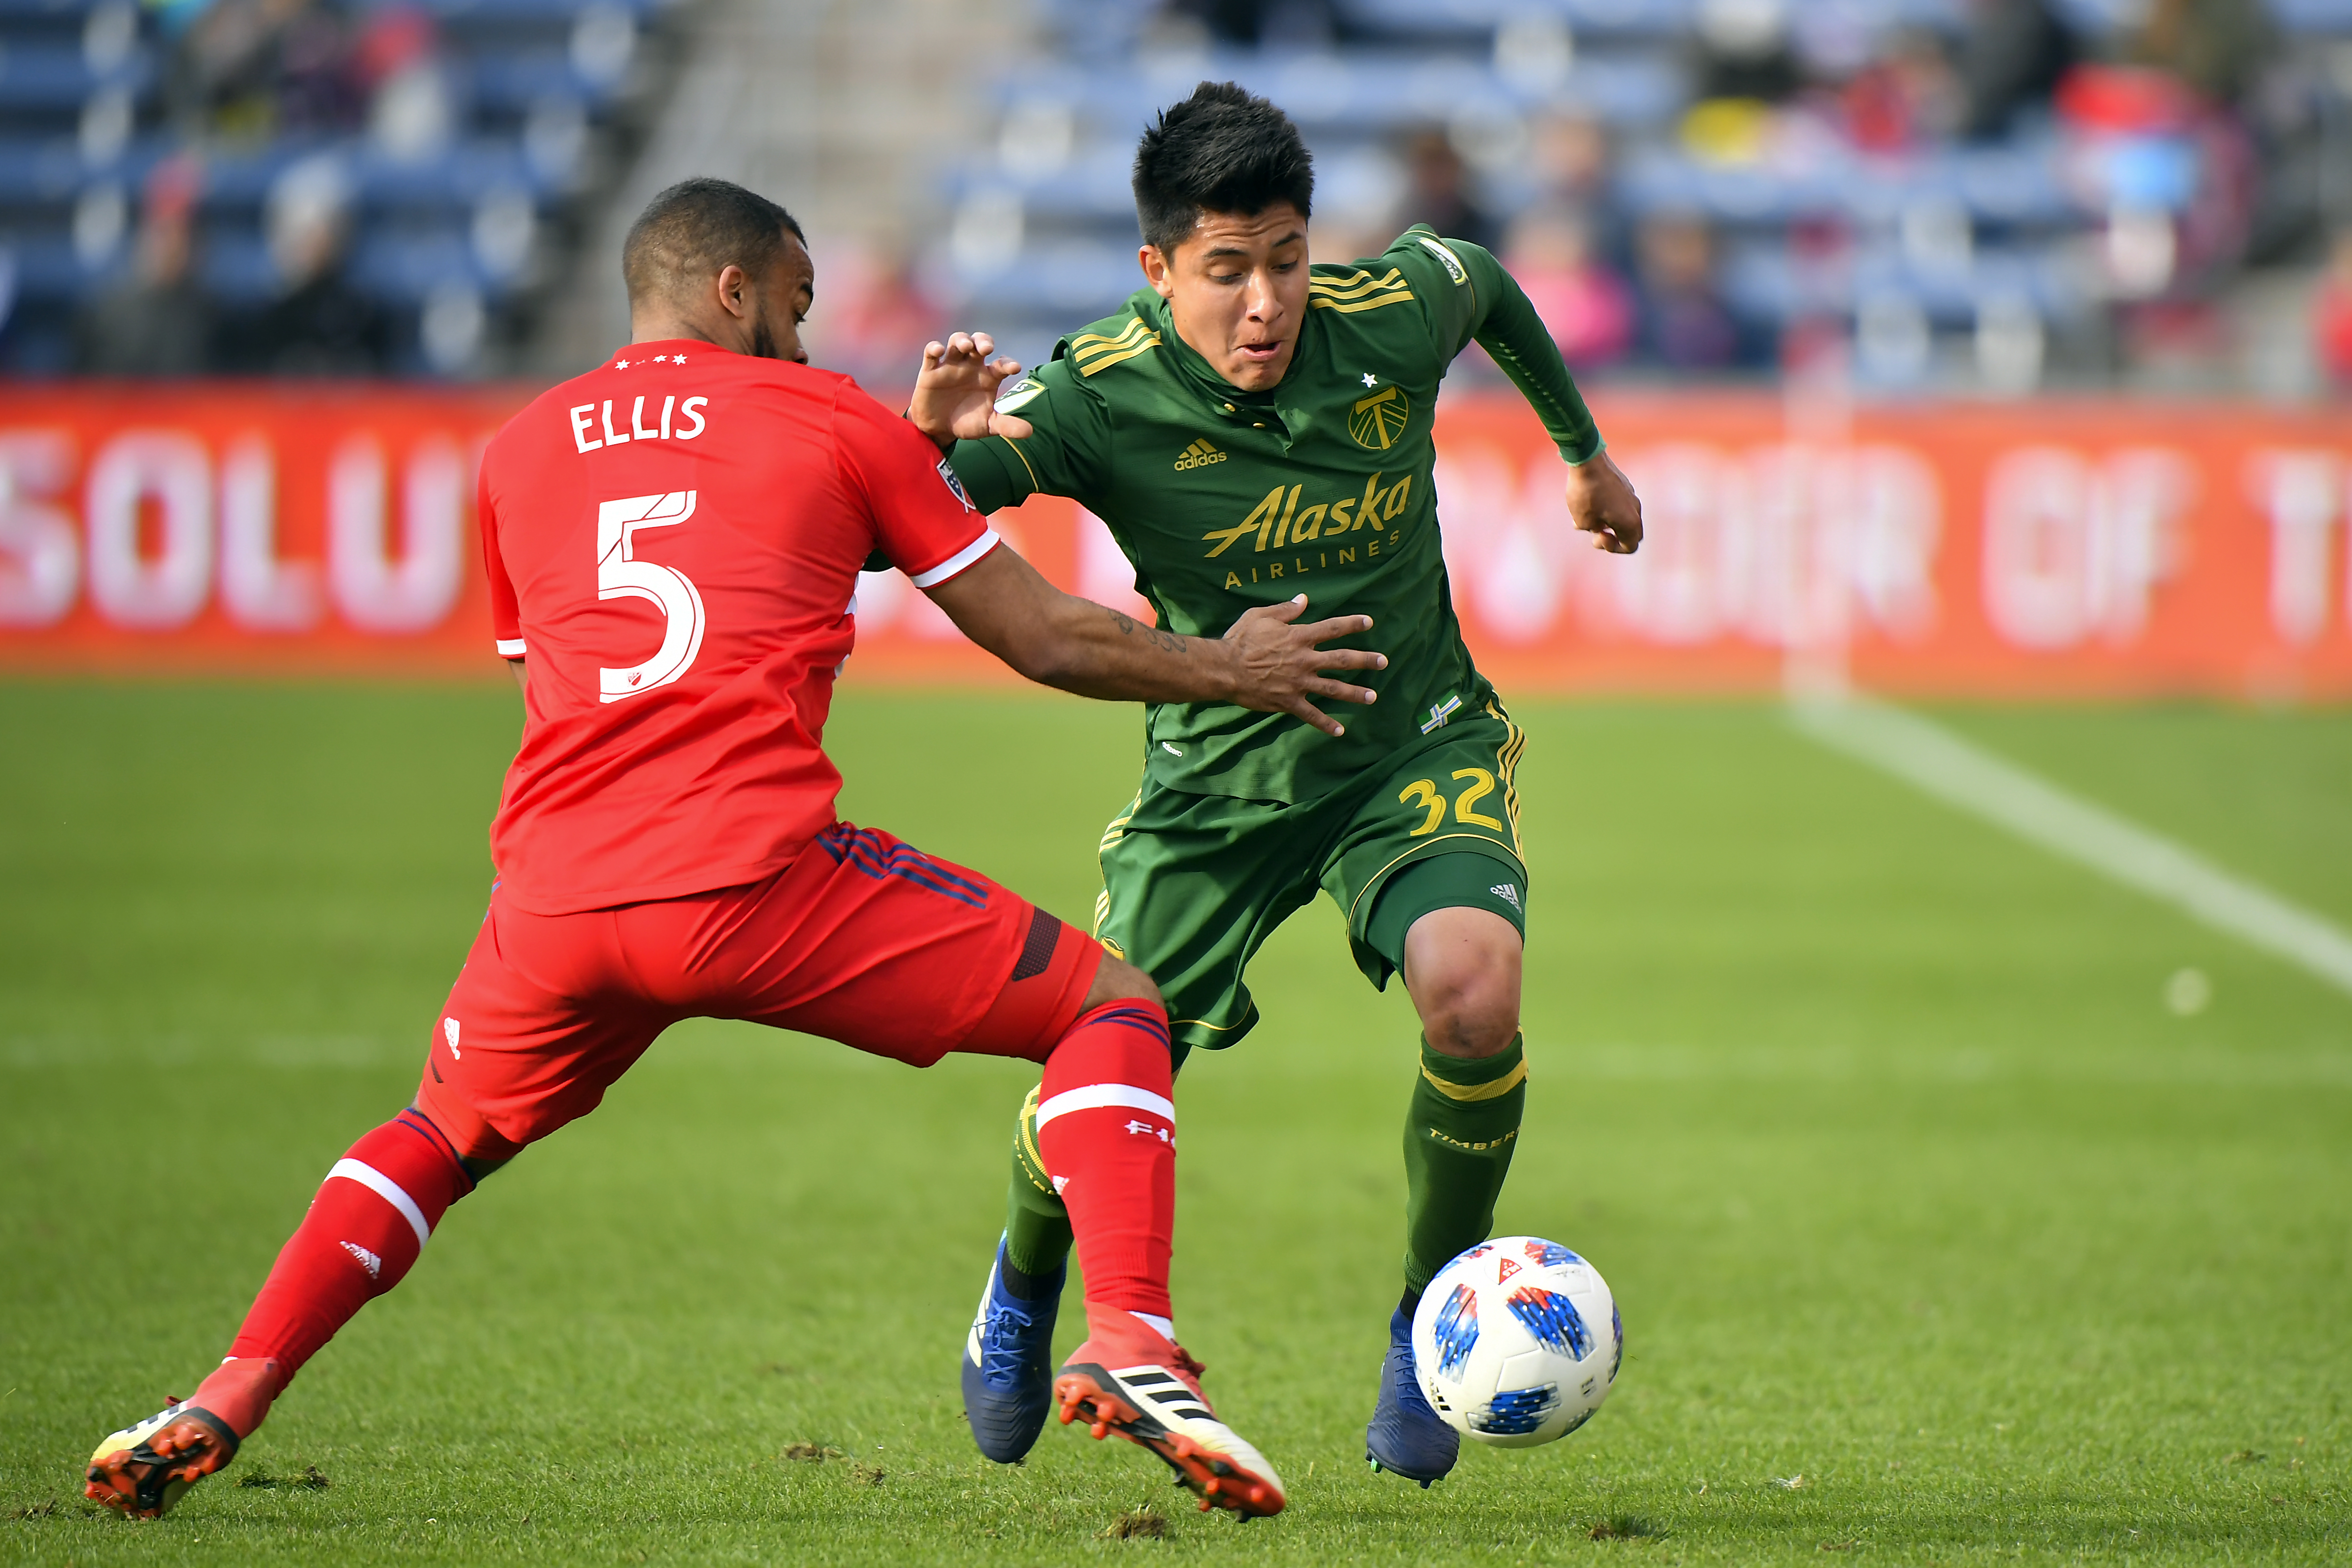 SOCCER: MAR 31 MLS - Portland Timbers at Chicago Fire